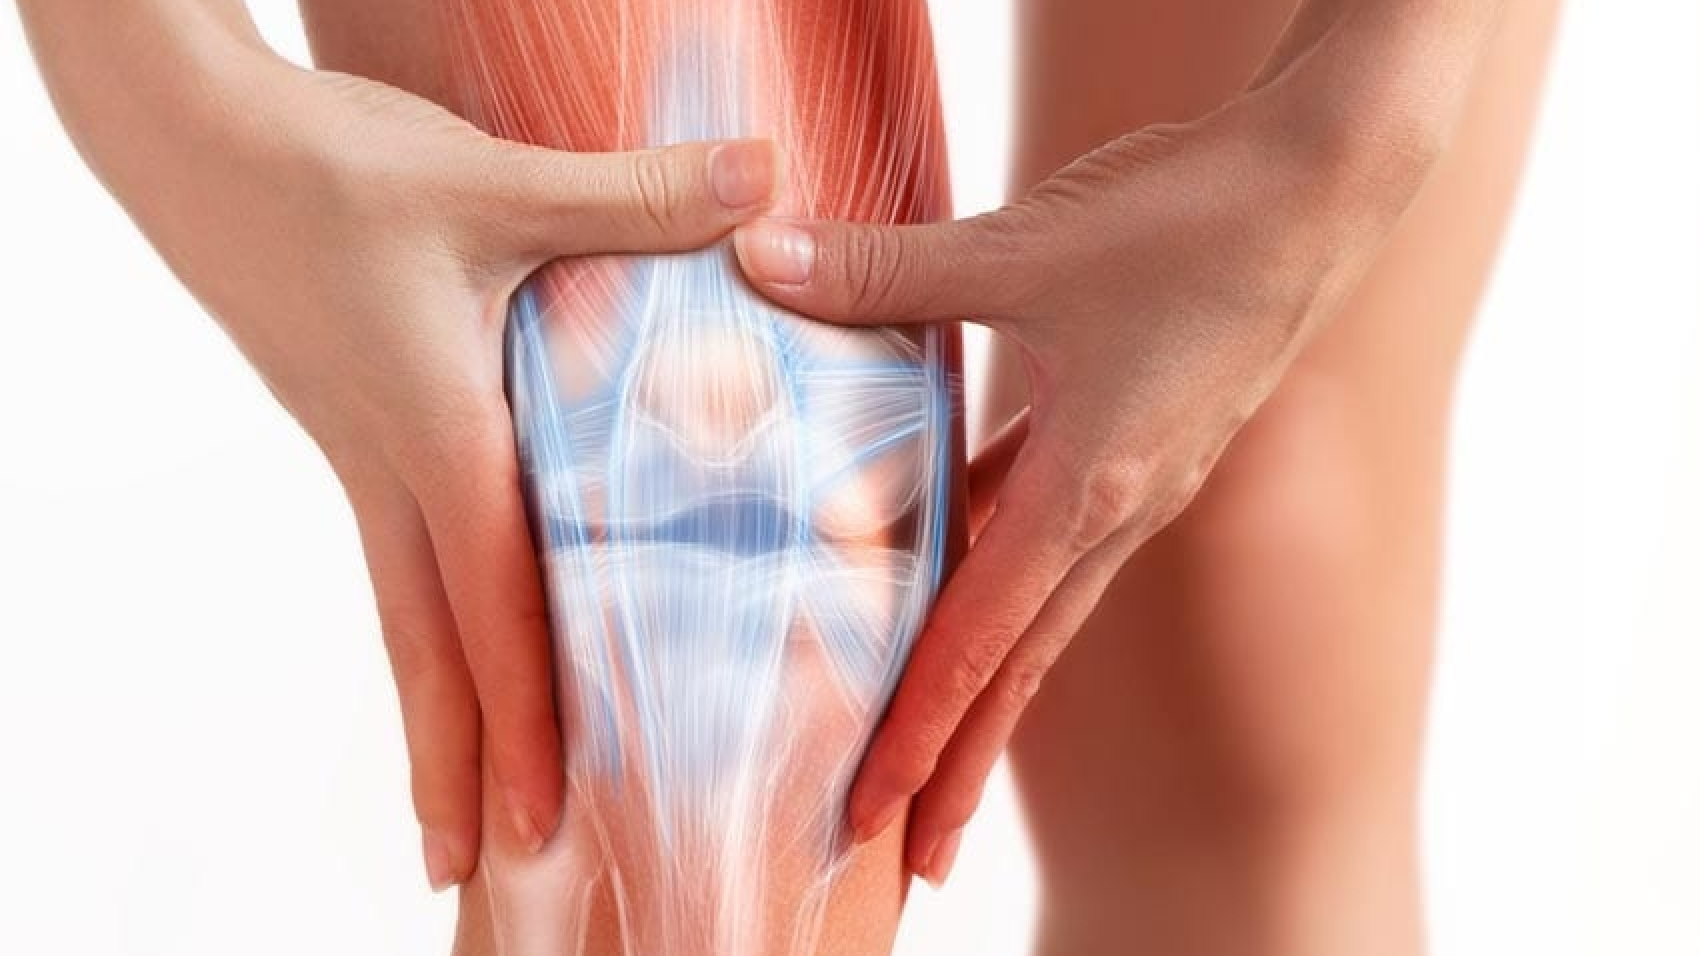 Stem cells for knee pain